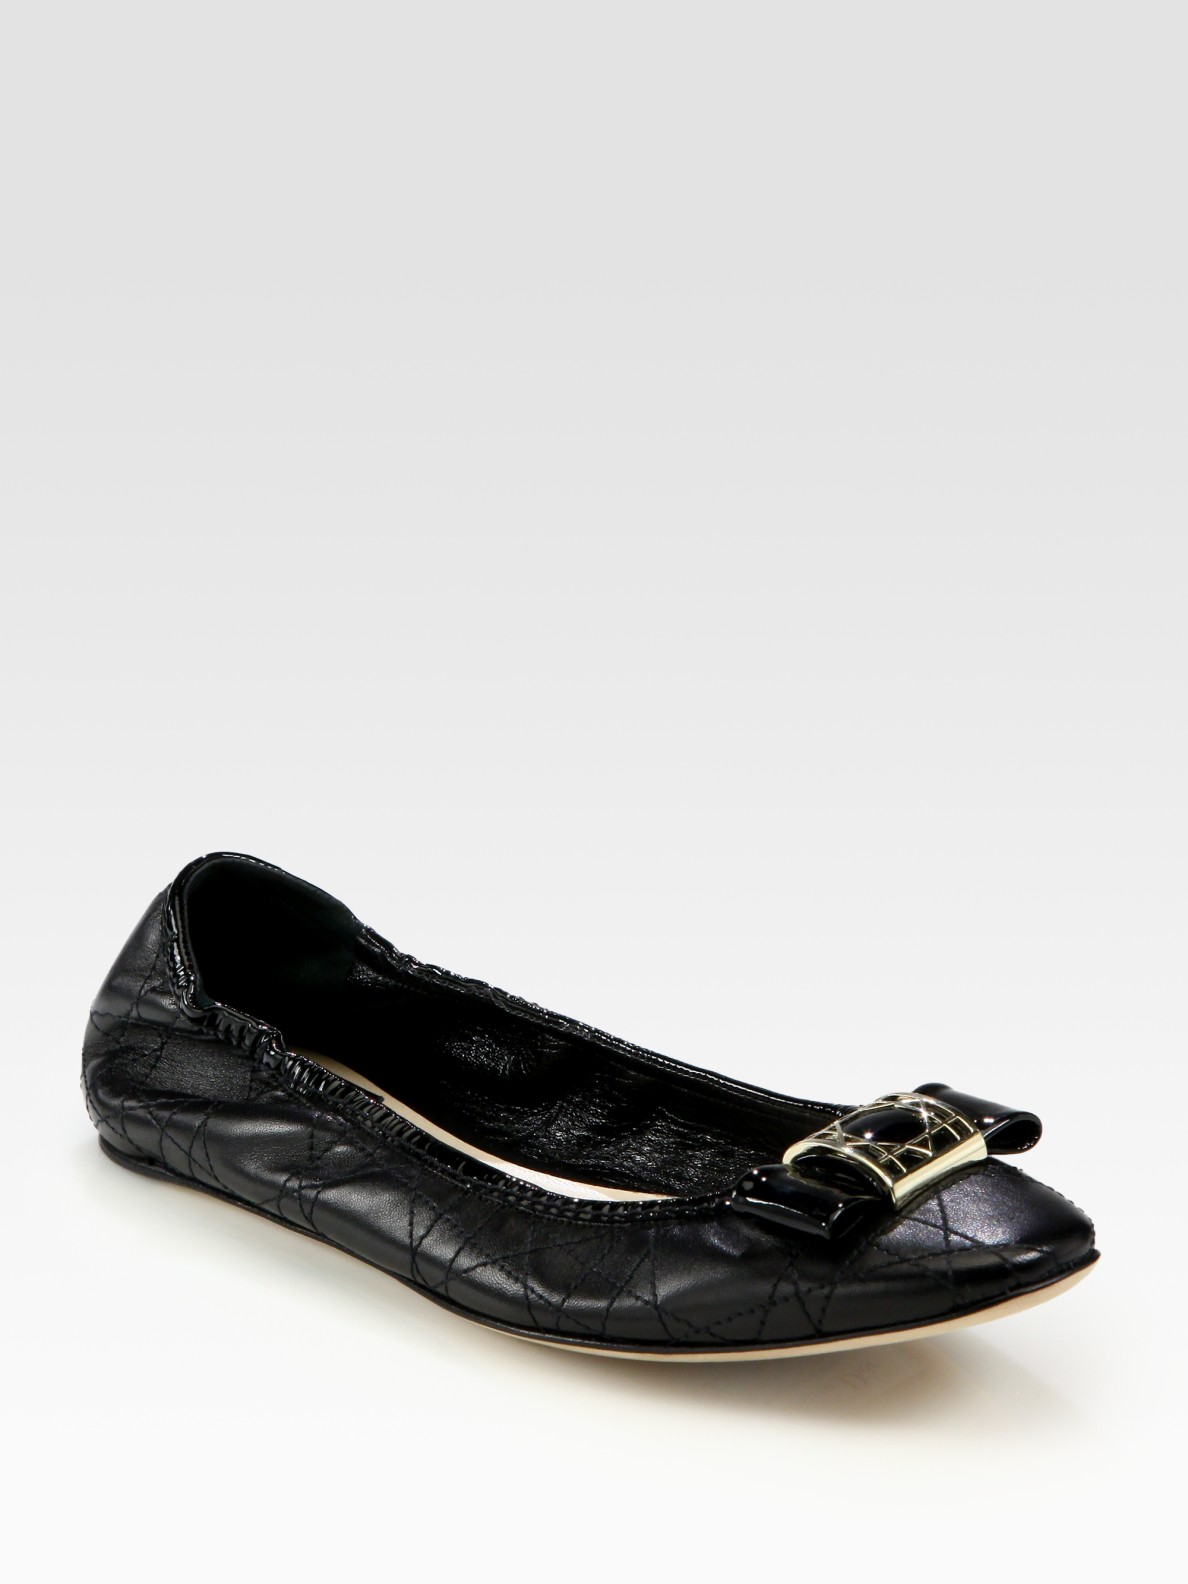 7bc931a61eb344 Lyst - Dior Cannage Patent Leather Bow Ballet Flats in Black